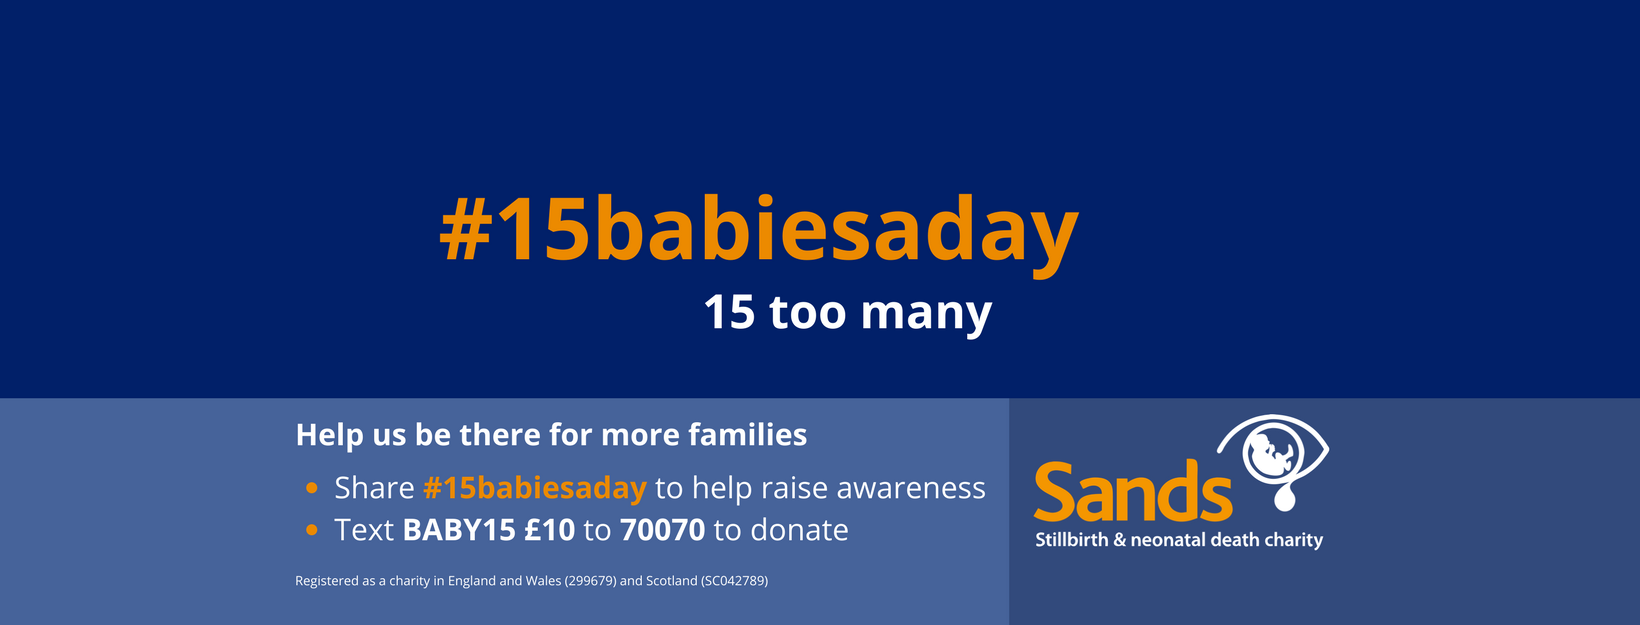 15 babies a day Facebook cover, #15babiesaday